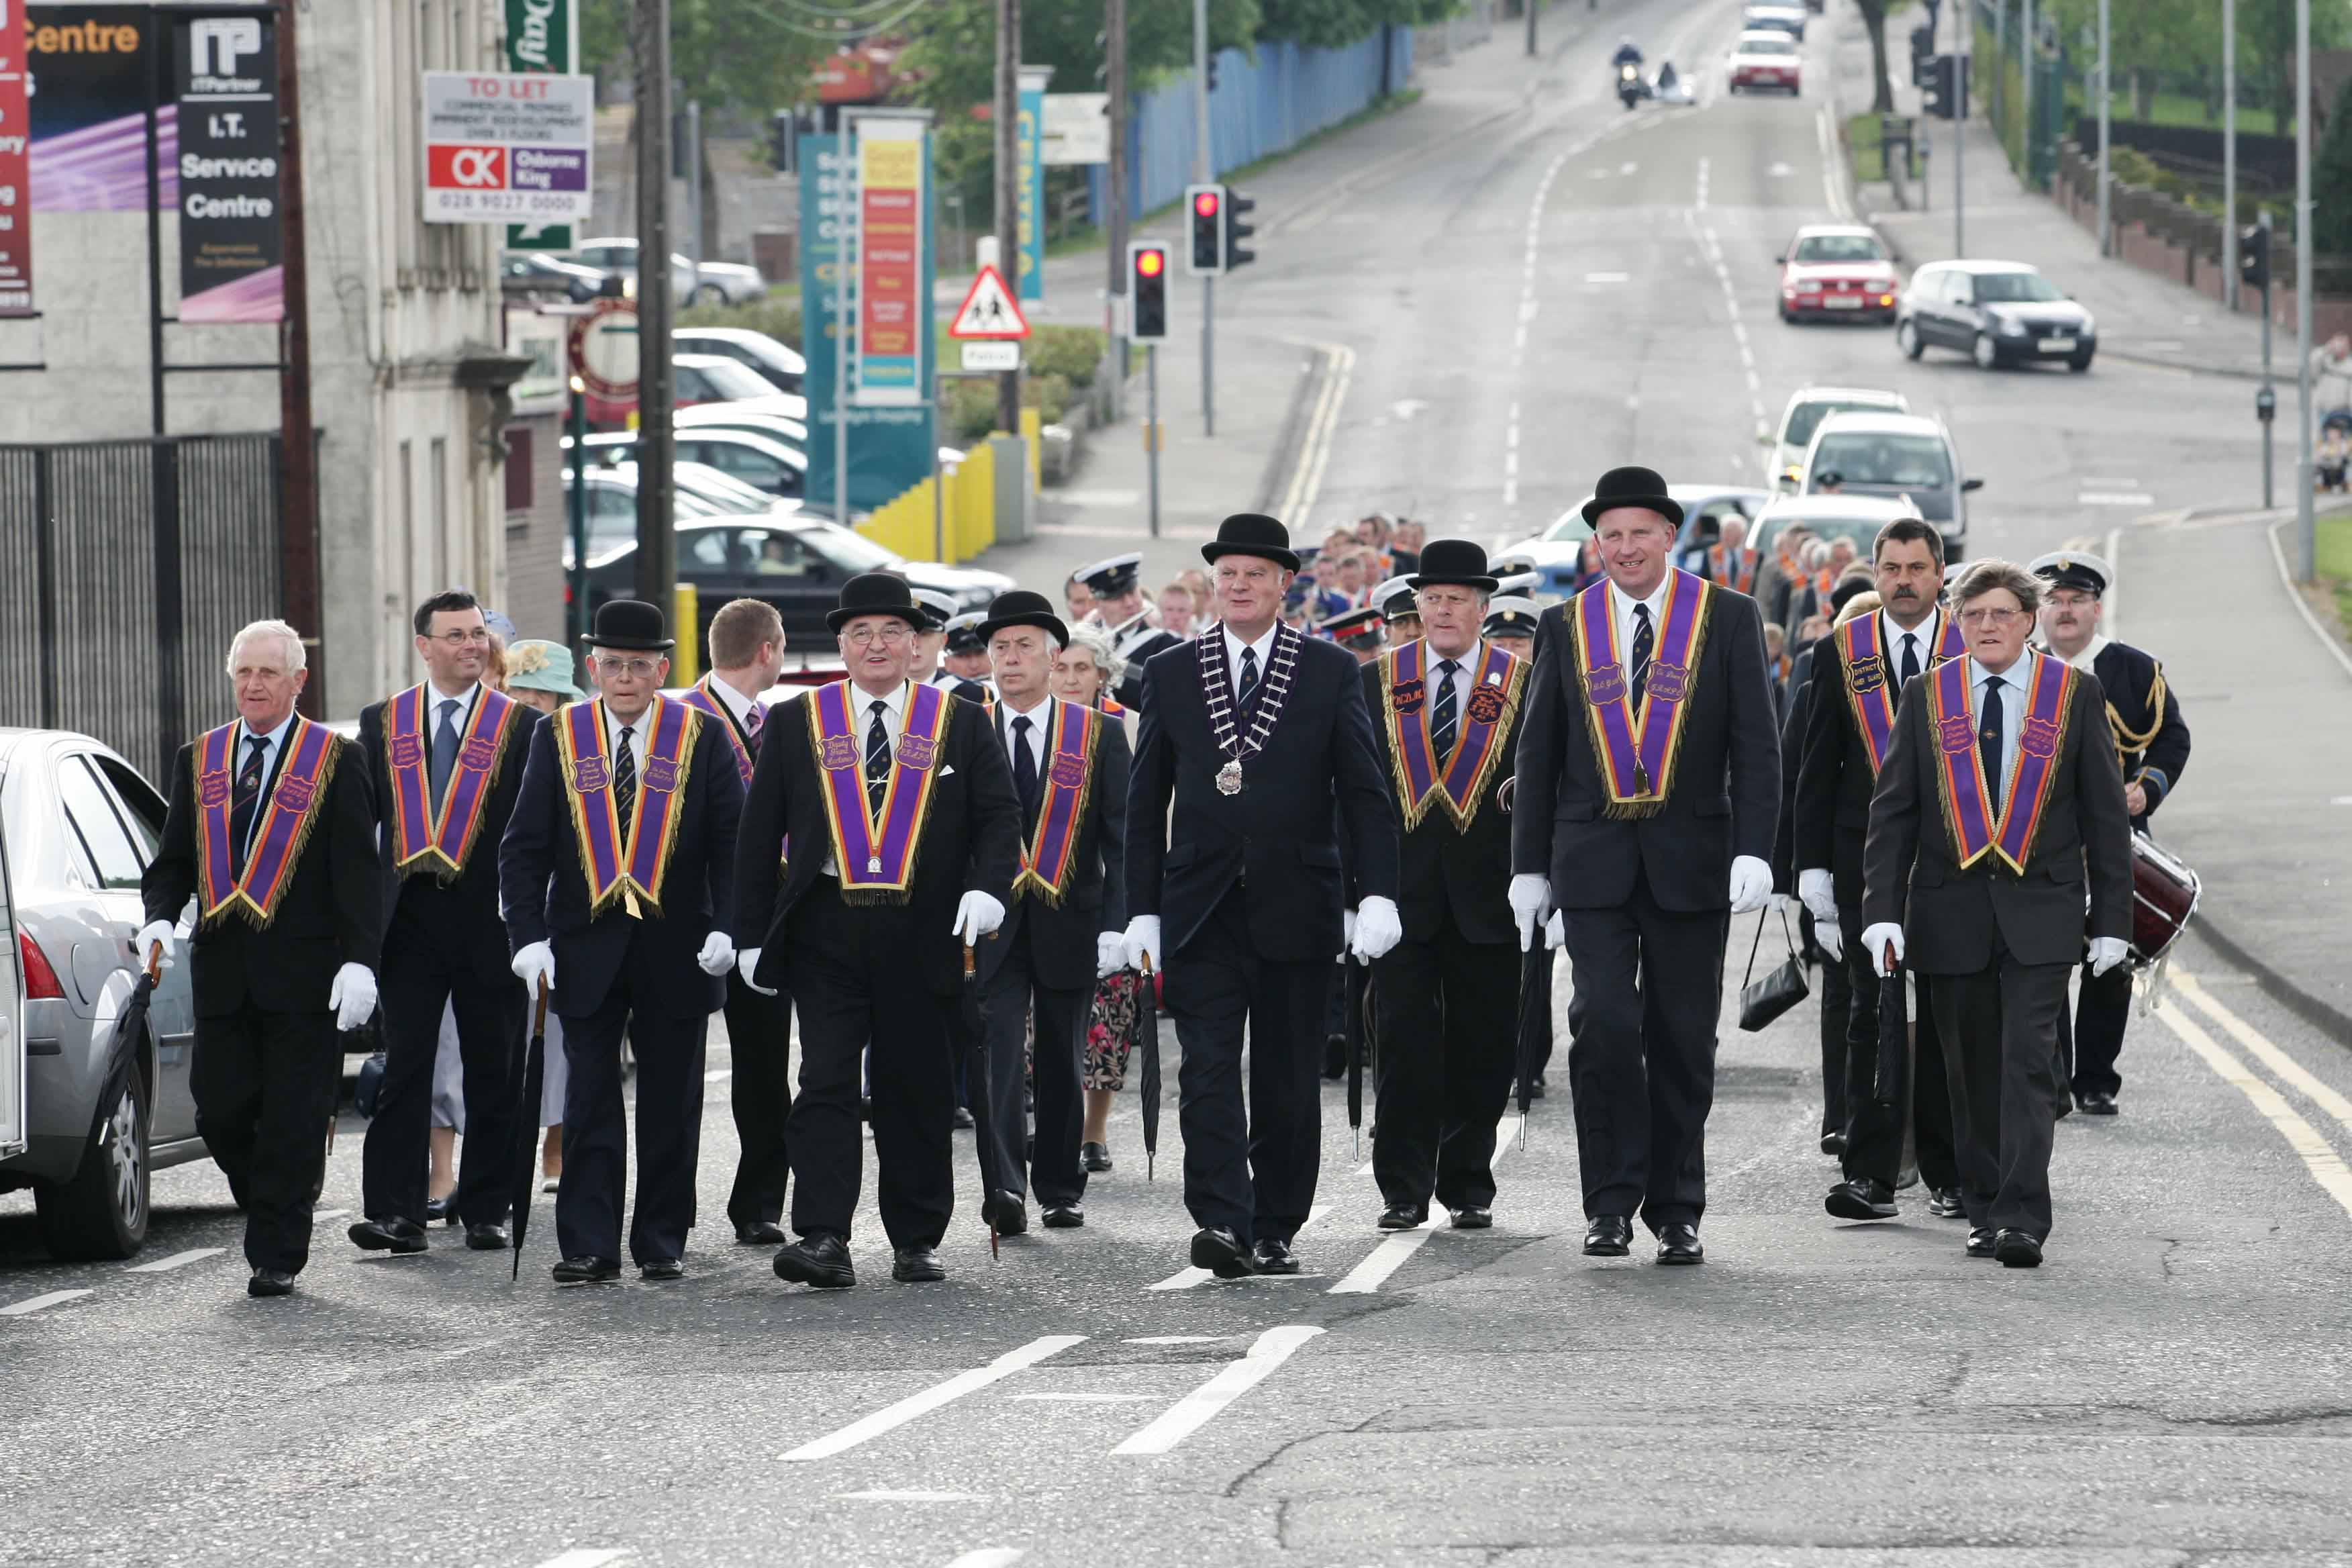 Officers from Banbridge Royal Arch Purple District on parade to Banbridge Baptist Church led by Bro. John Smyth, County Grand Master. 20-41-07.